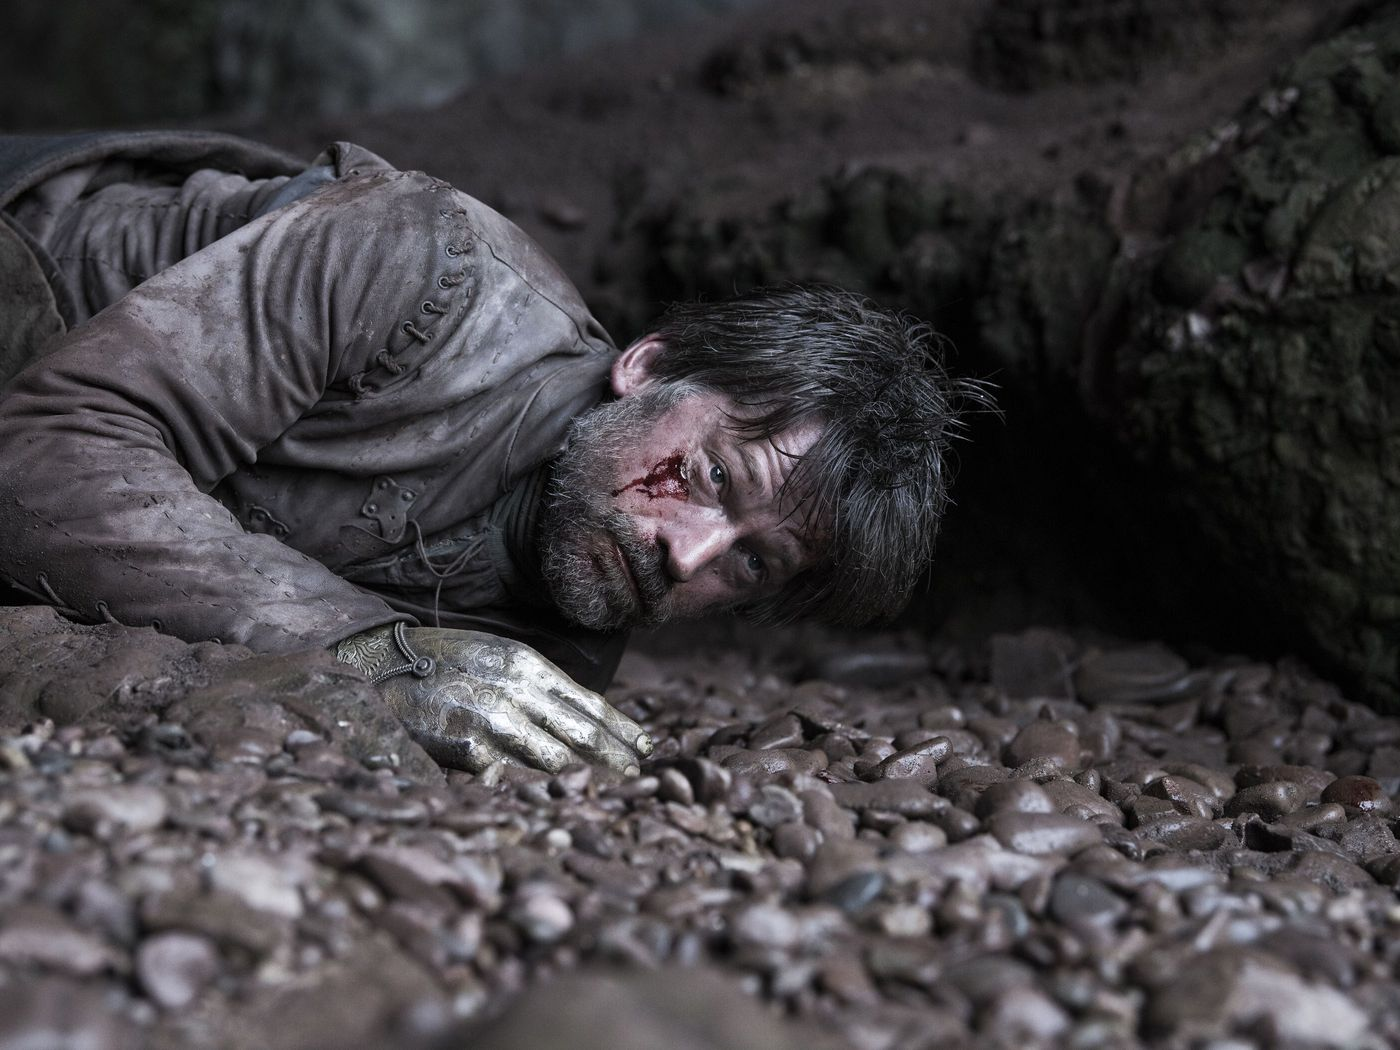 Game of Thrones season 8 episode 5: the two biggest deaths felt